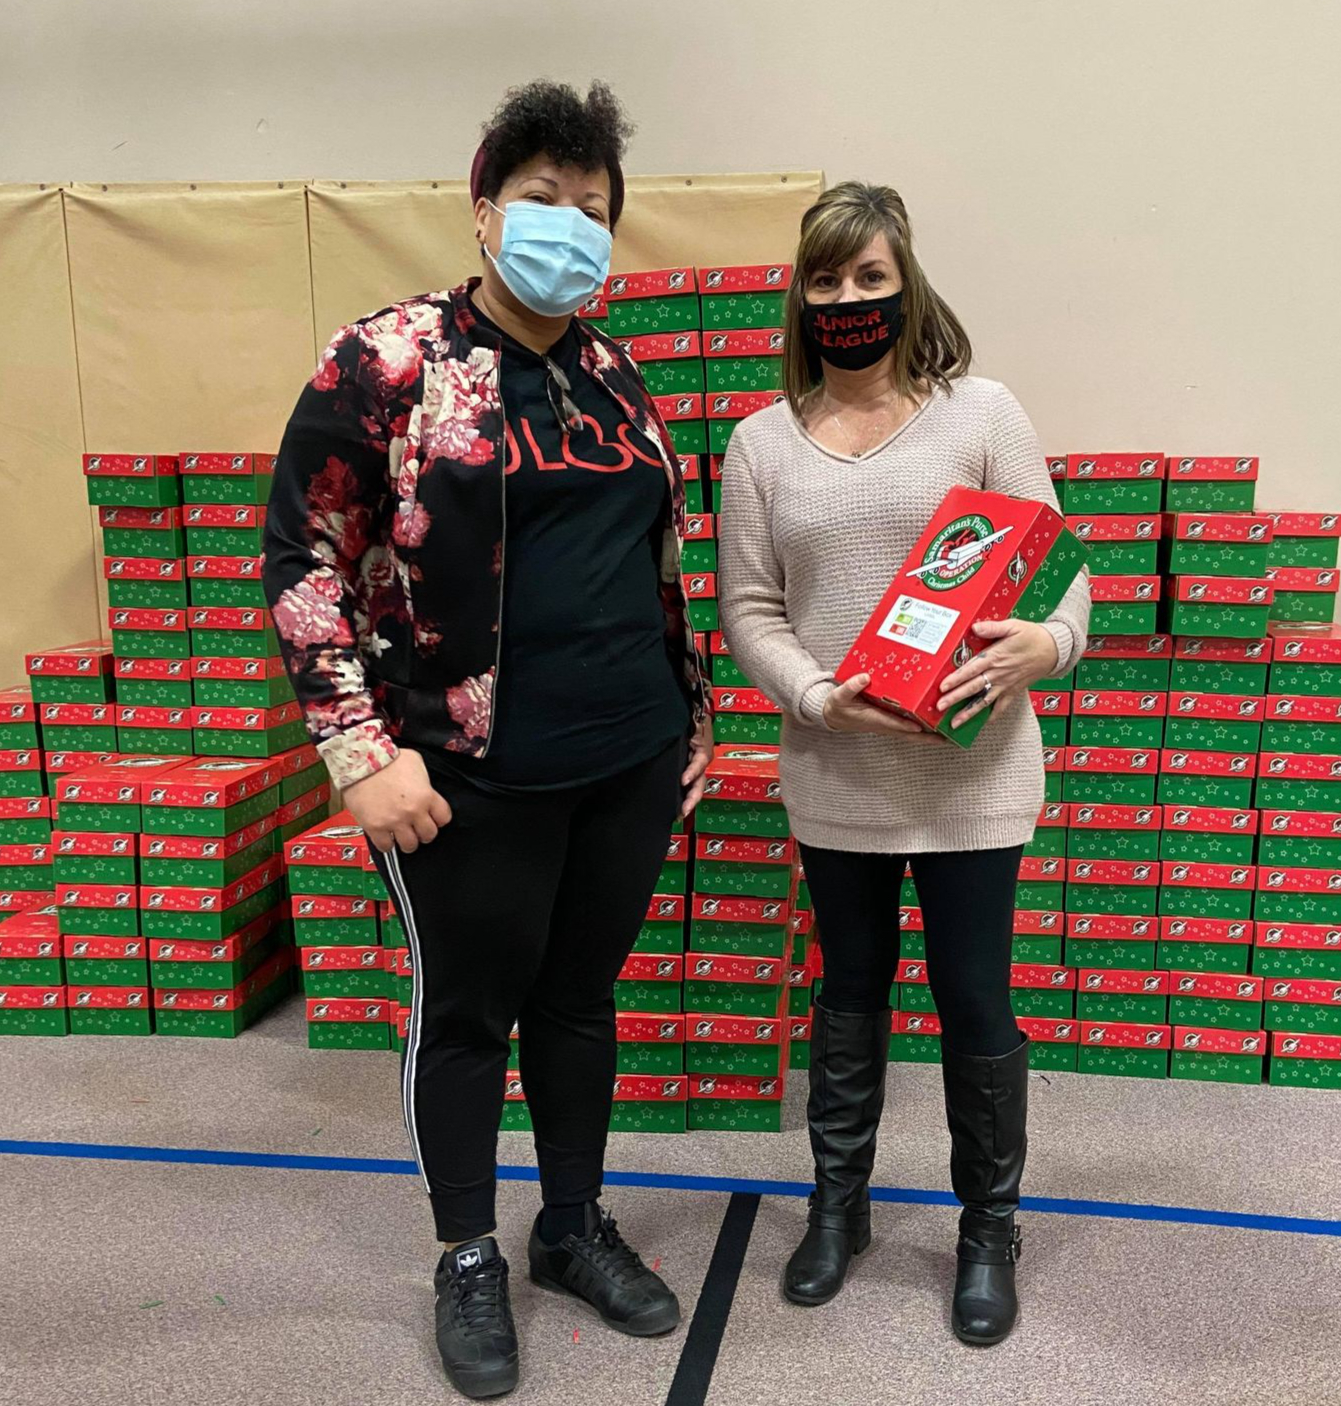 Operation Christmas Child Shoebox Packing.jpg